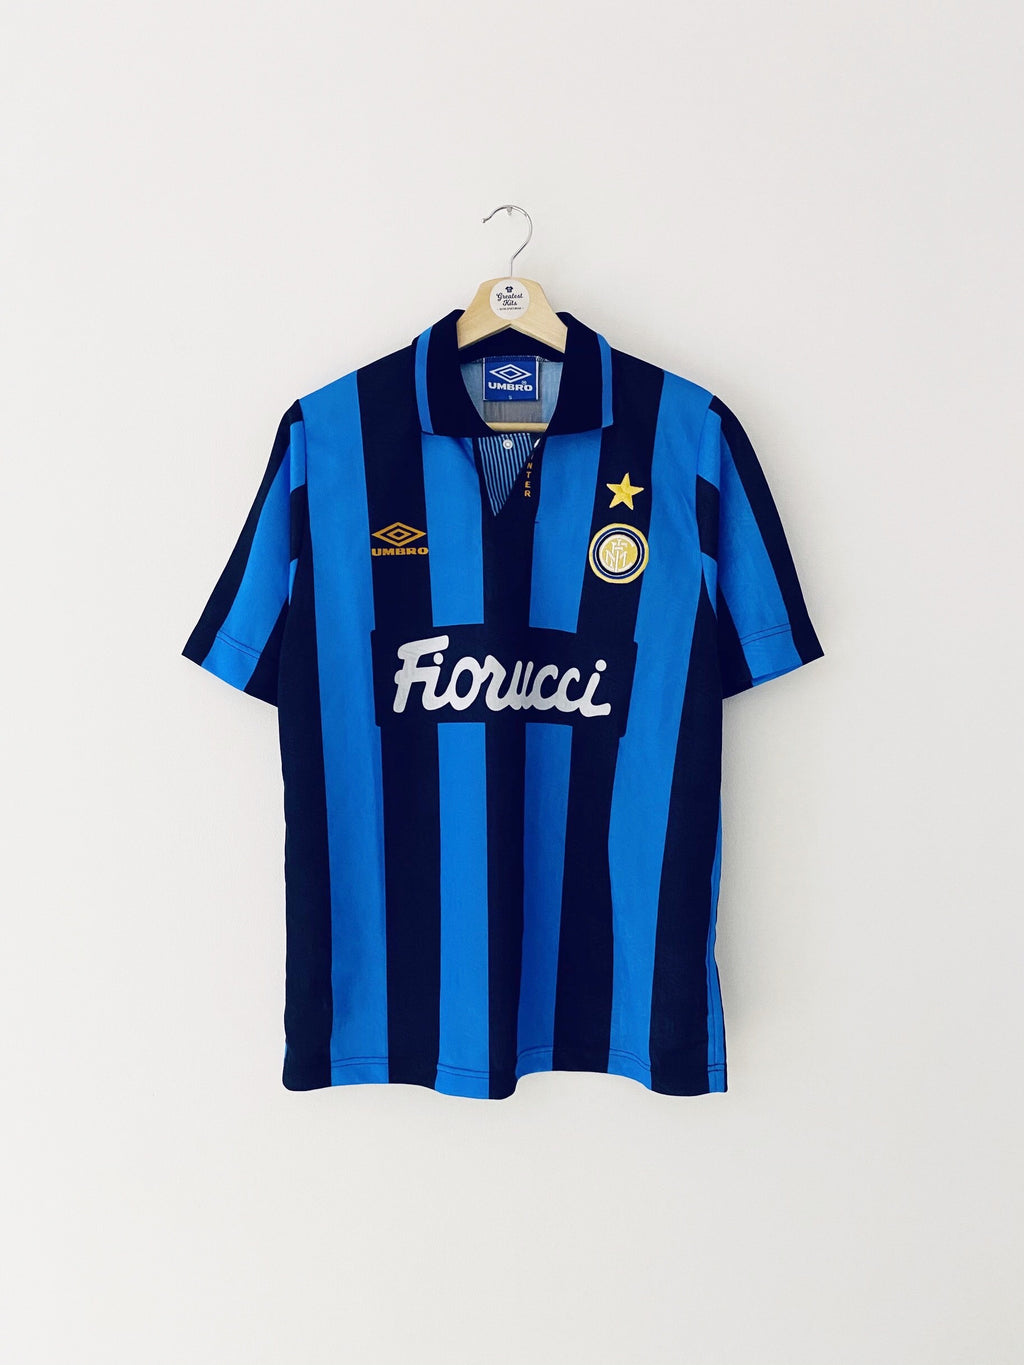 1992/94 Inter Milan Basic Home Shirt (S) 8/10